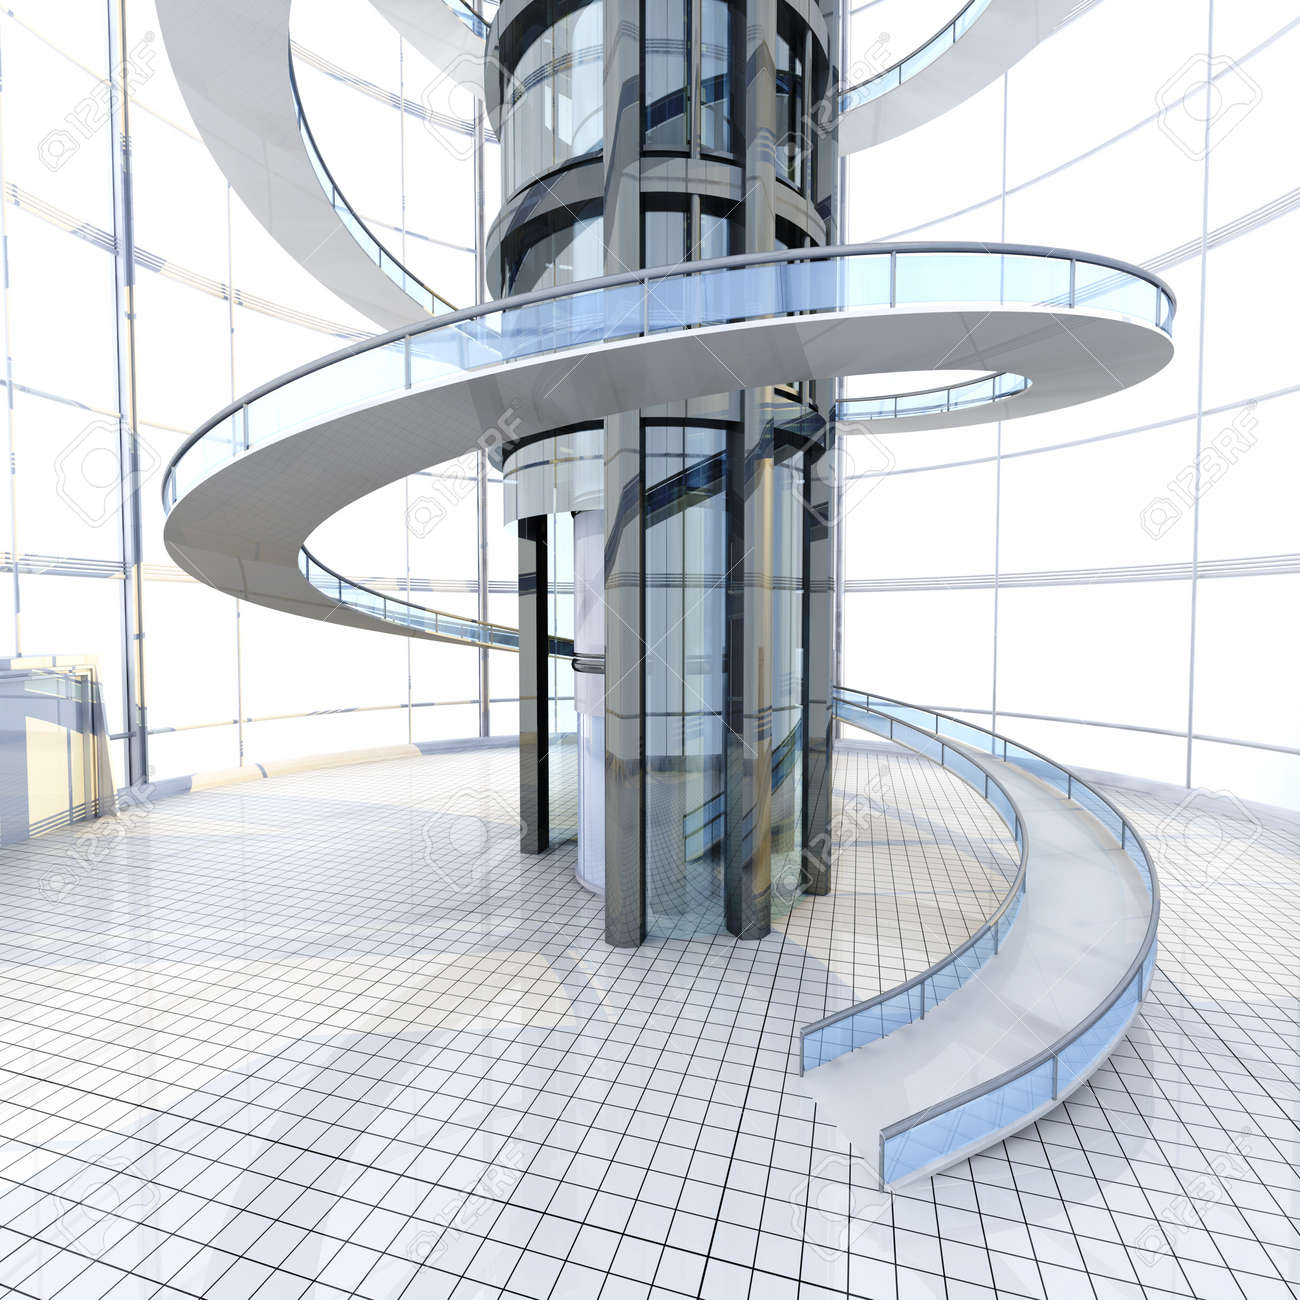 Science fiction architektur visualisierung 3d gerendert illustration lizenzfreie bilder 21159265